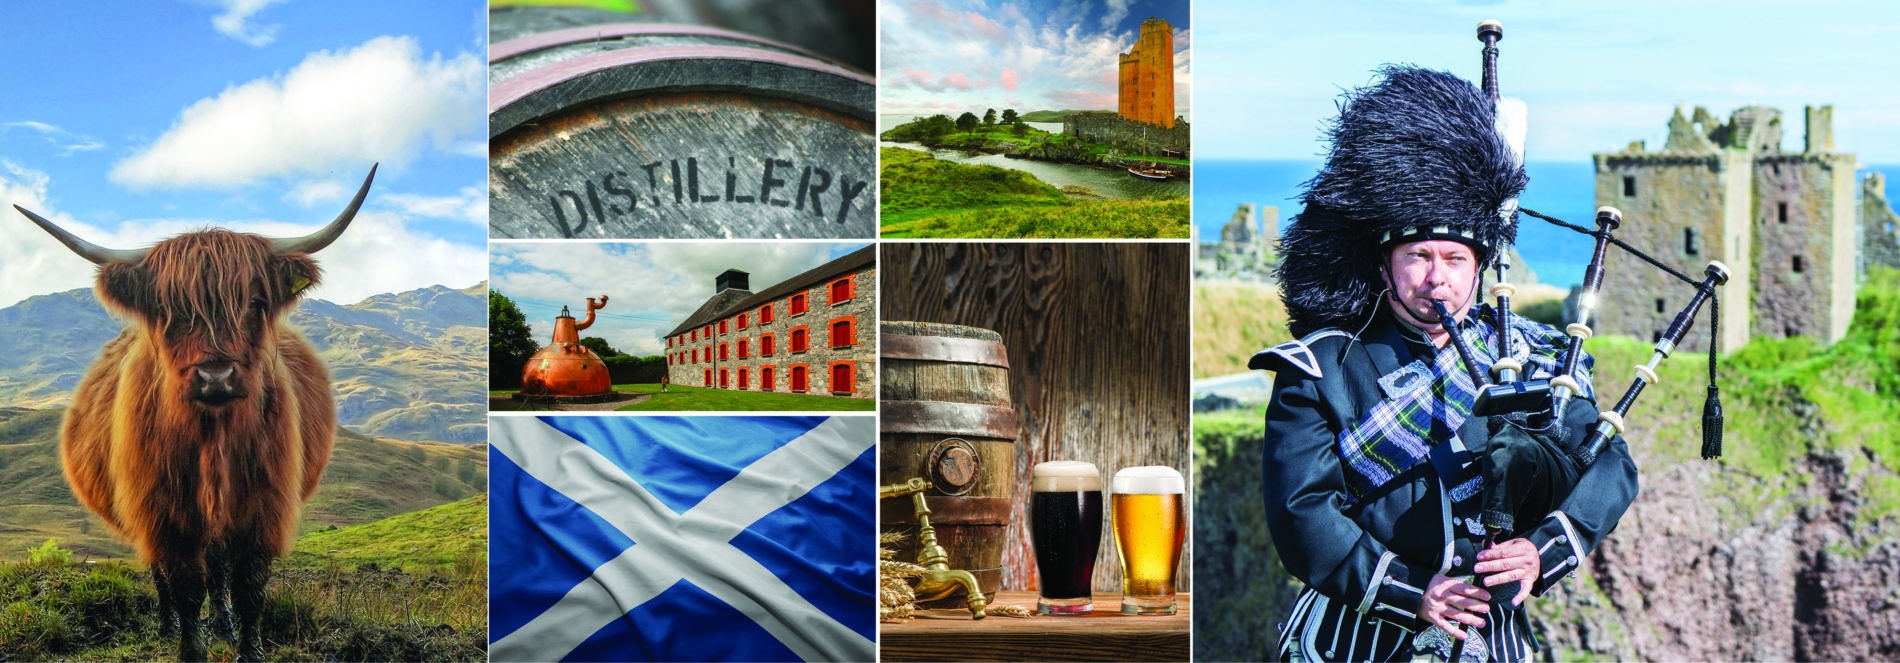 HopScotch - Beer and Whisky Tour of Scotland